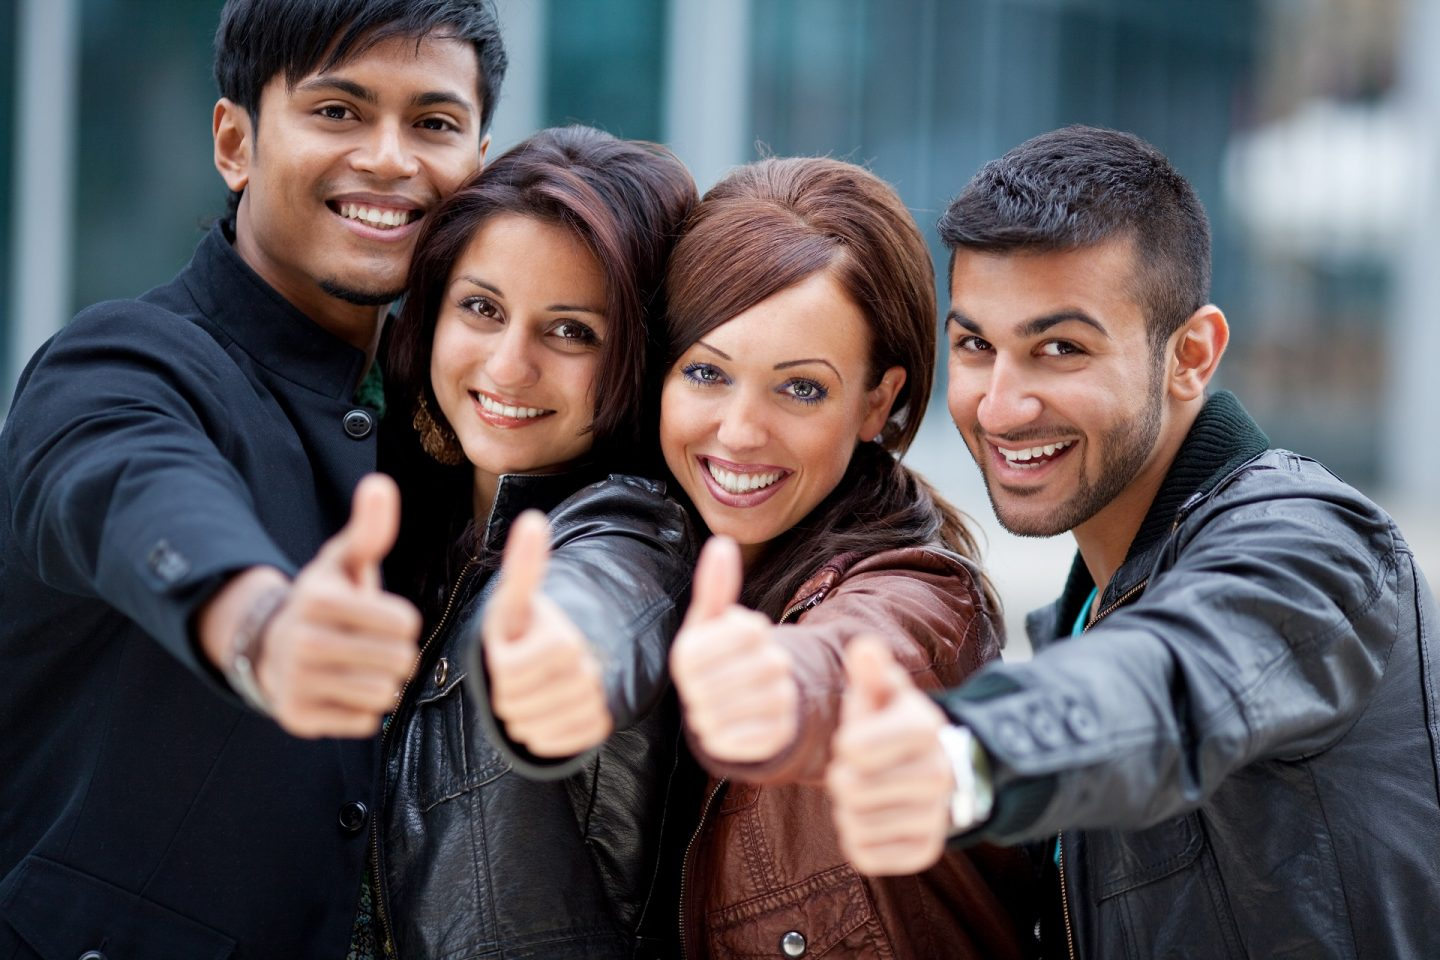 Four motivated friends giving a thumbs up